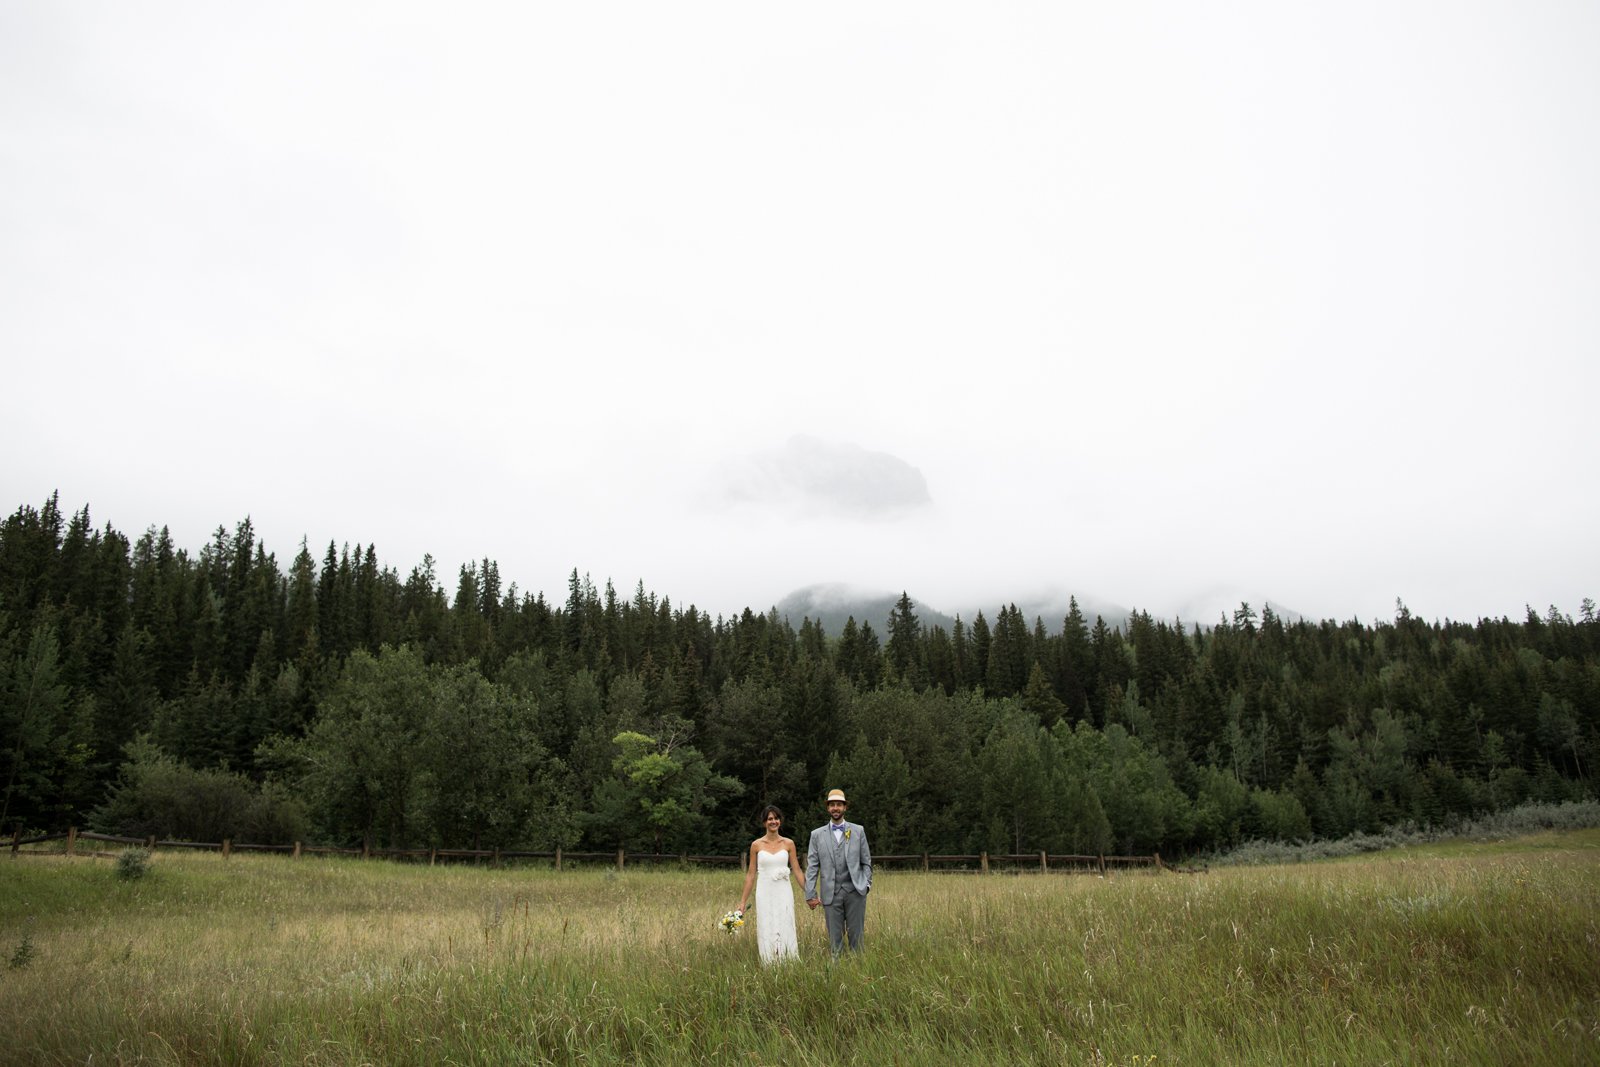 69Willow_and_wolf_Calgary_Wedding Photography-68-282Andrew_Pavlidis_Photography_Silene_and_Sacha_Canmore_Wedding-3737